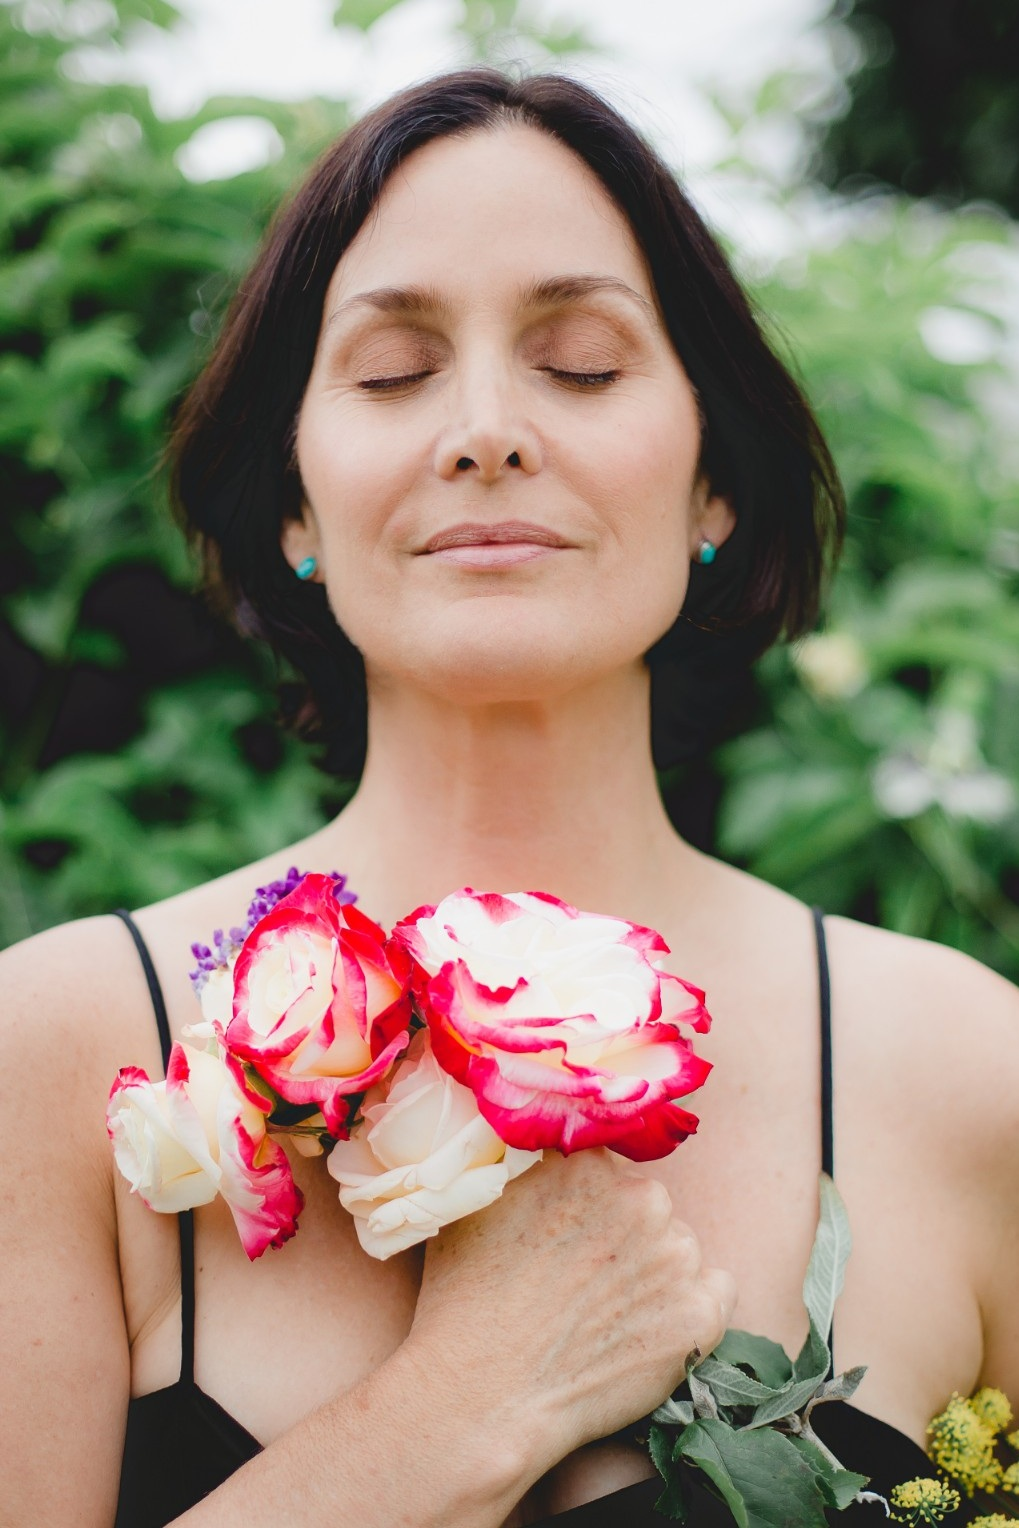 CARRIE ANNE MOSS - Founder Annapurna Living, Actor, Inspiration